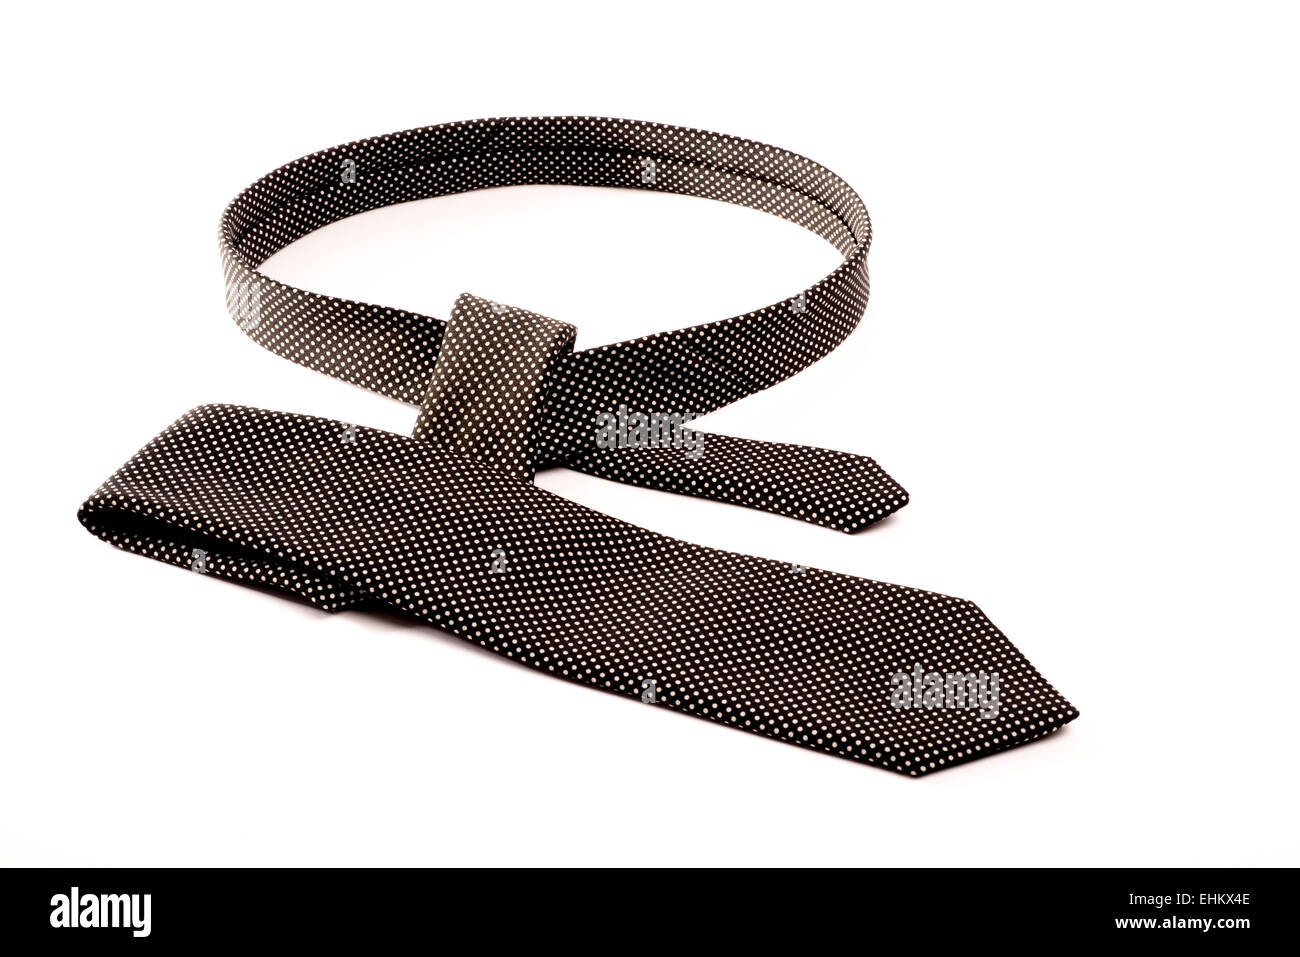 A black and white tie on a white isolated background in the process of being tied. - Stock Image